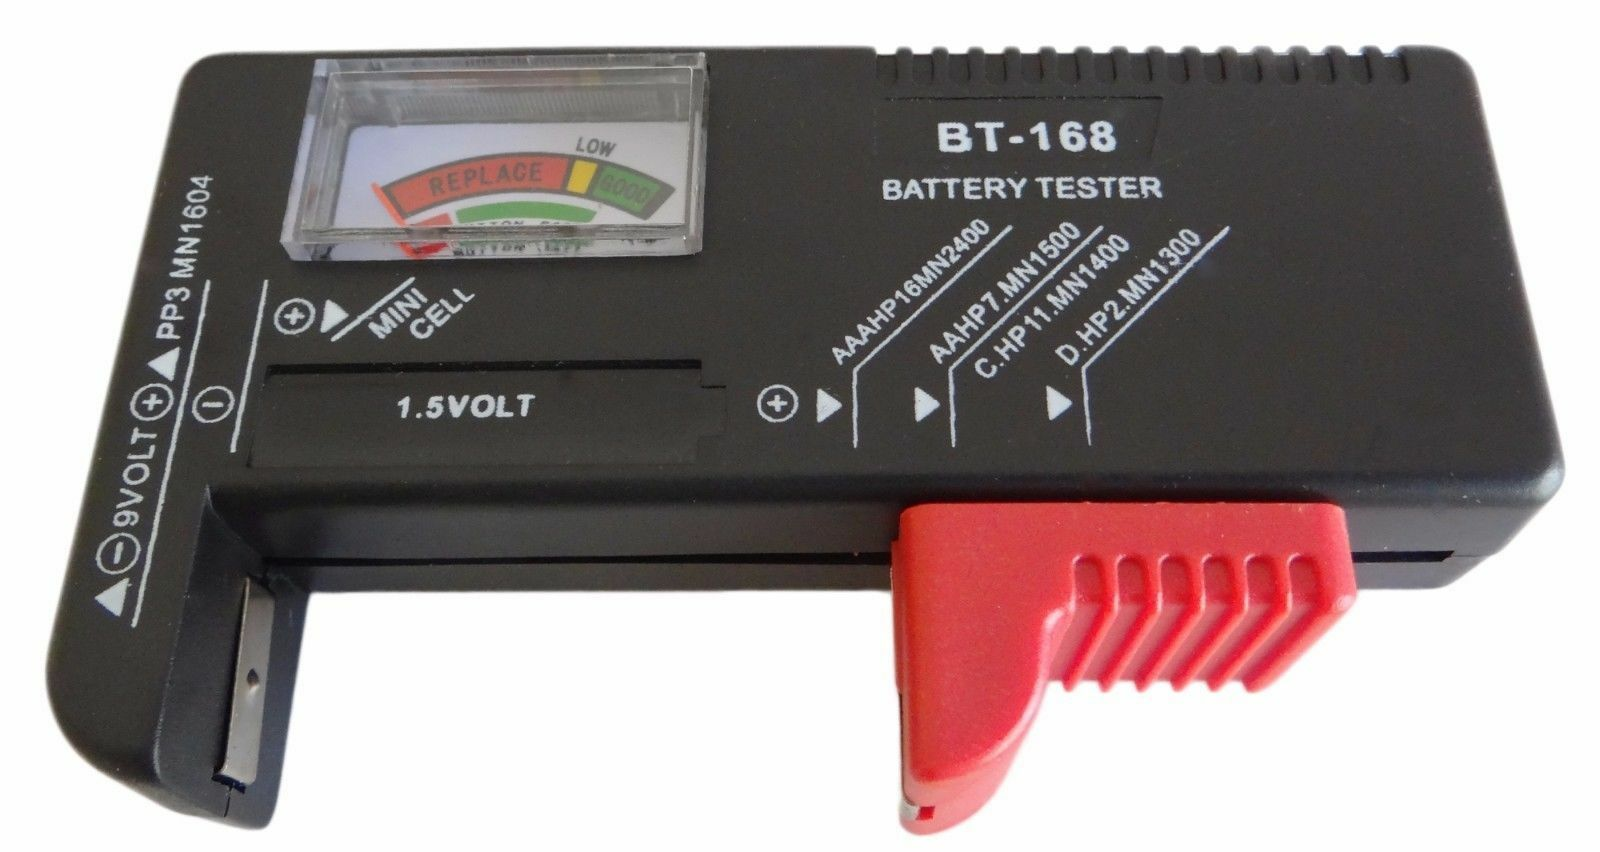 New Battery Tester Universal Volt Checker AAA, AA, C, D, 9V & Button Cell US Battery Testers